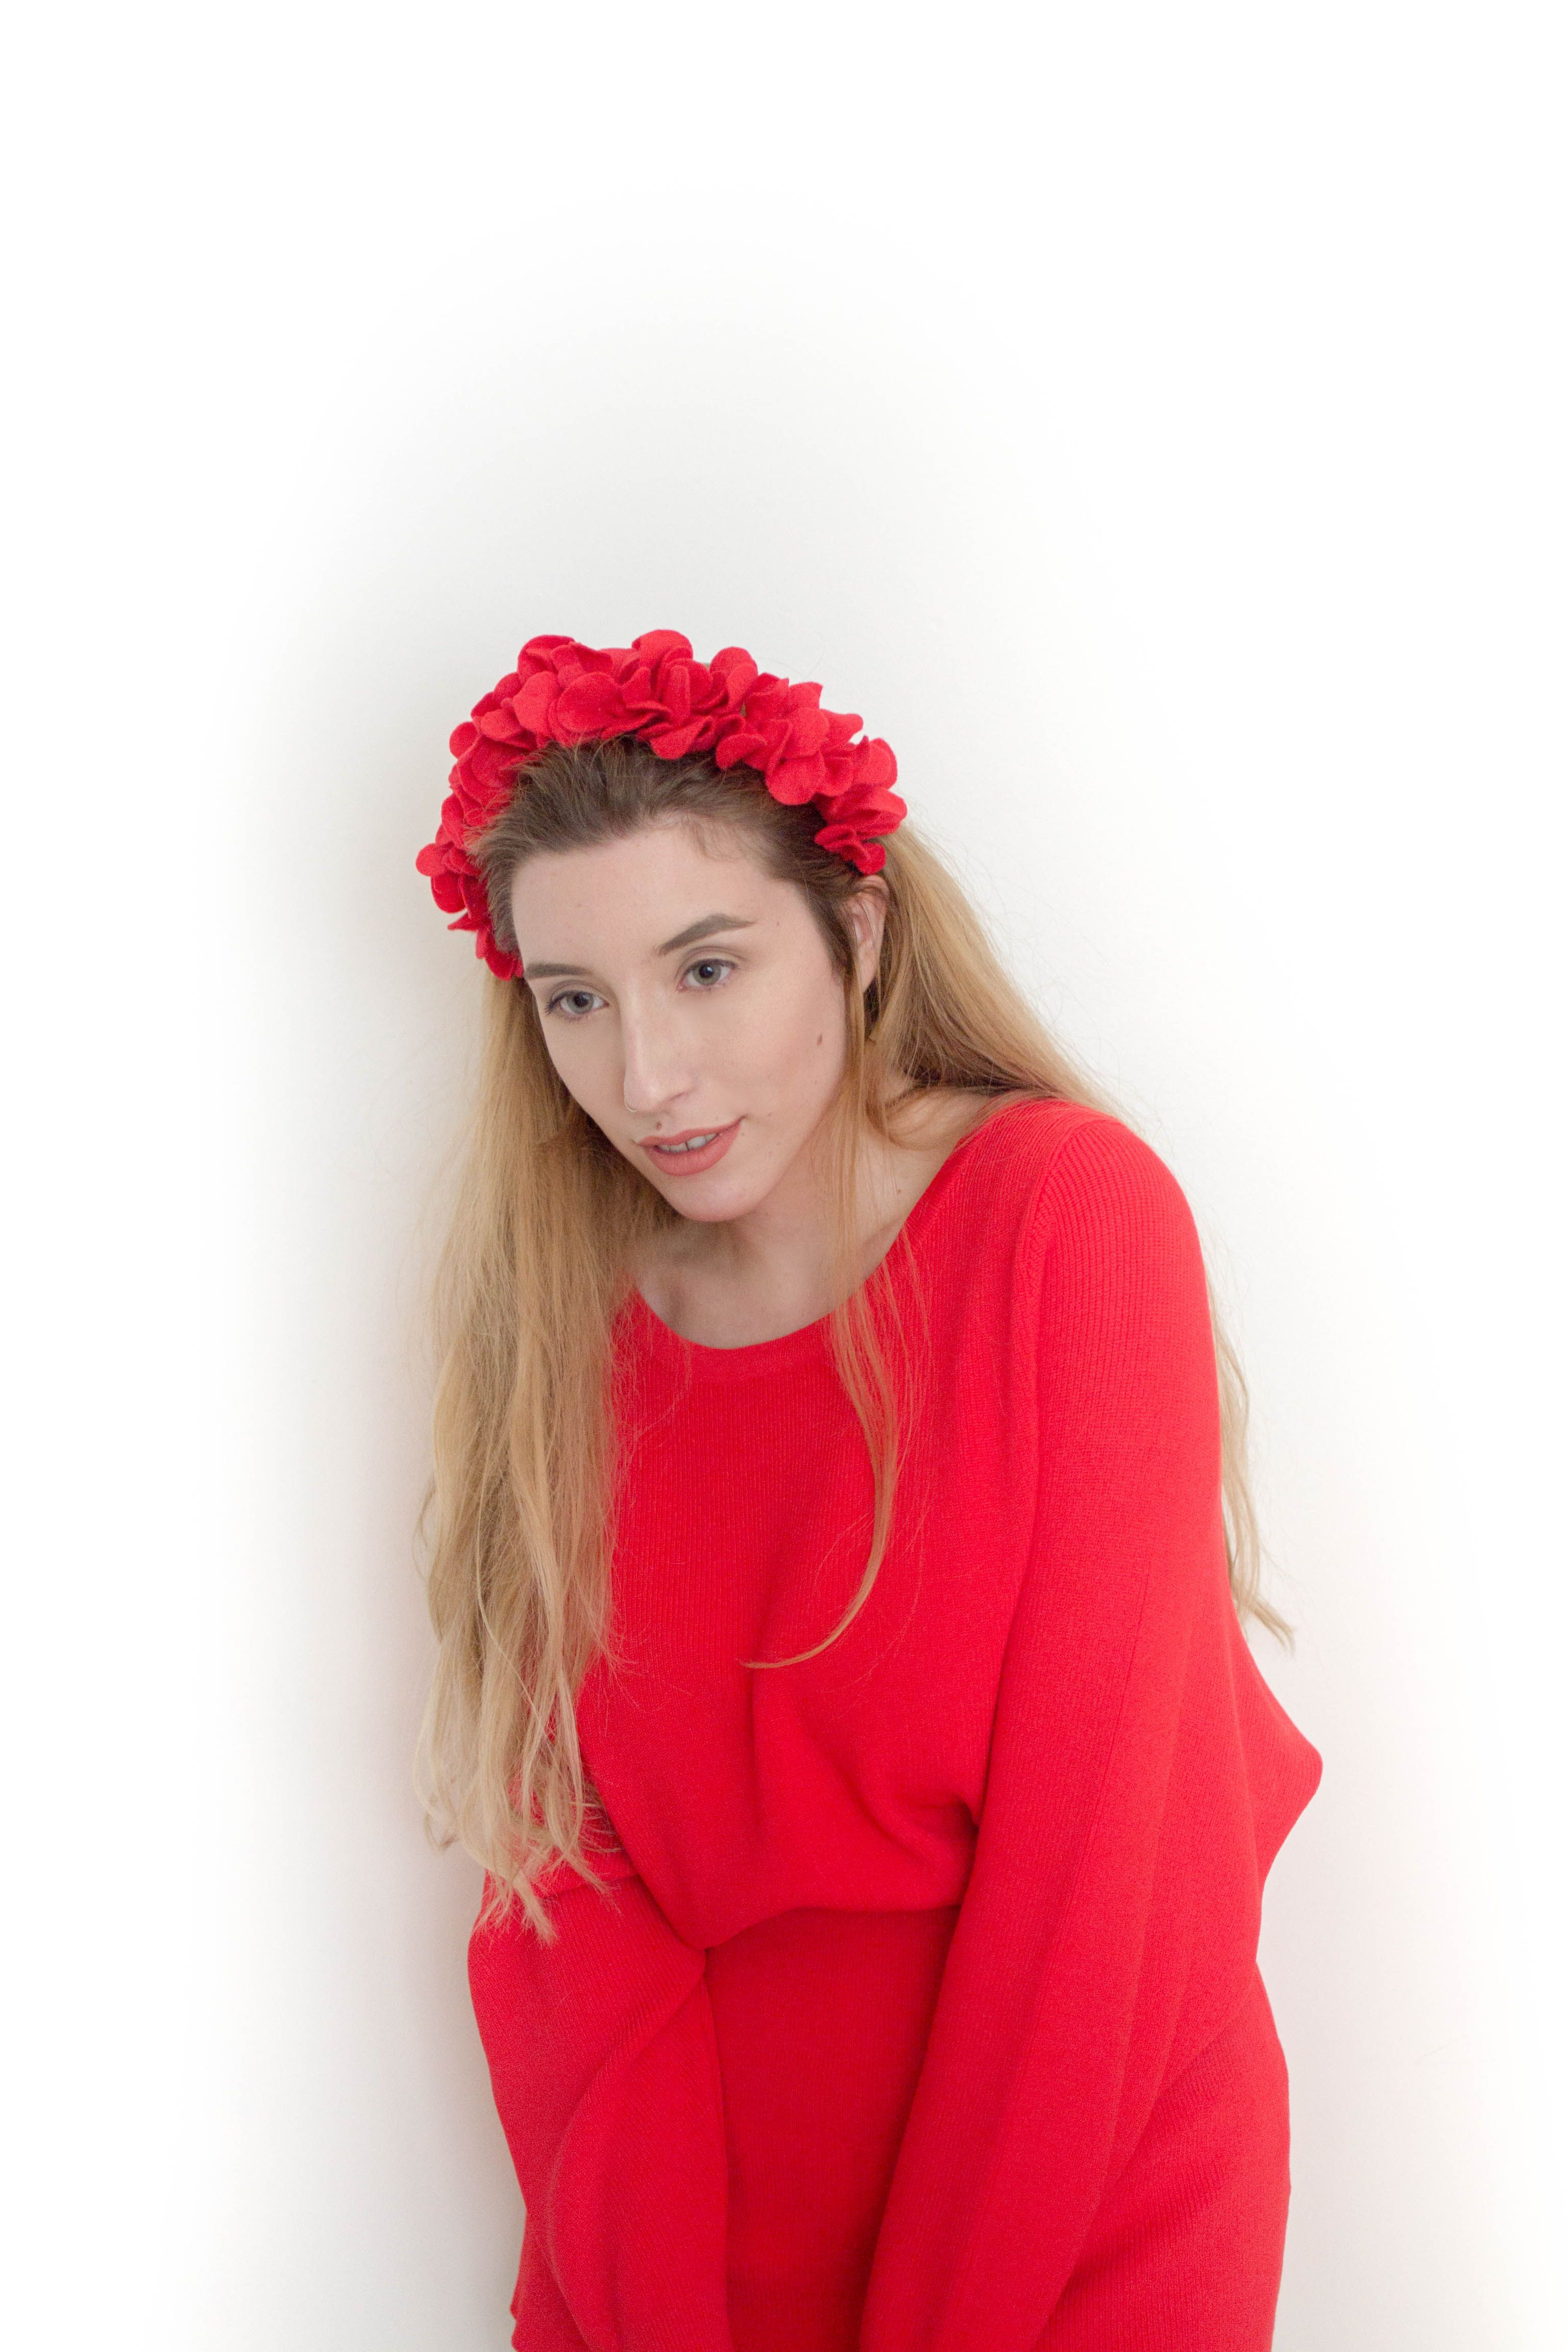 Red Headpiece Hair Band Flowers Crown Red Leaf Headpiece Woman Headband Hair Accessory For Girl Or Woman Re Boho Bridesmaid Red Flower Crown Red Headband